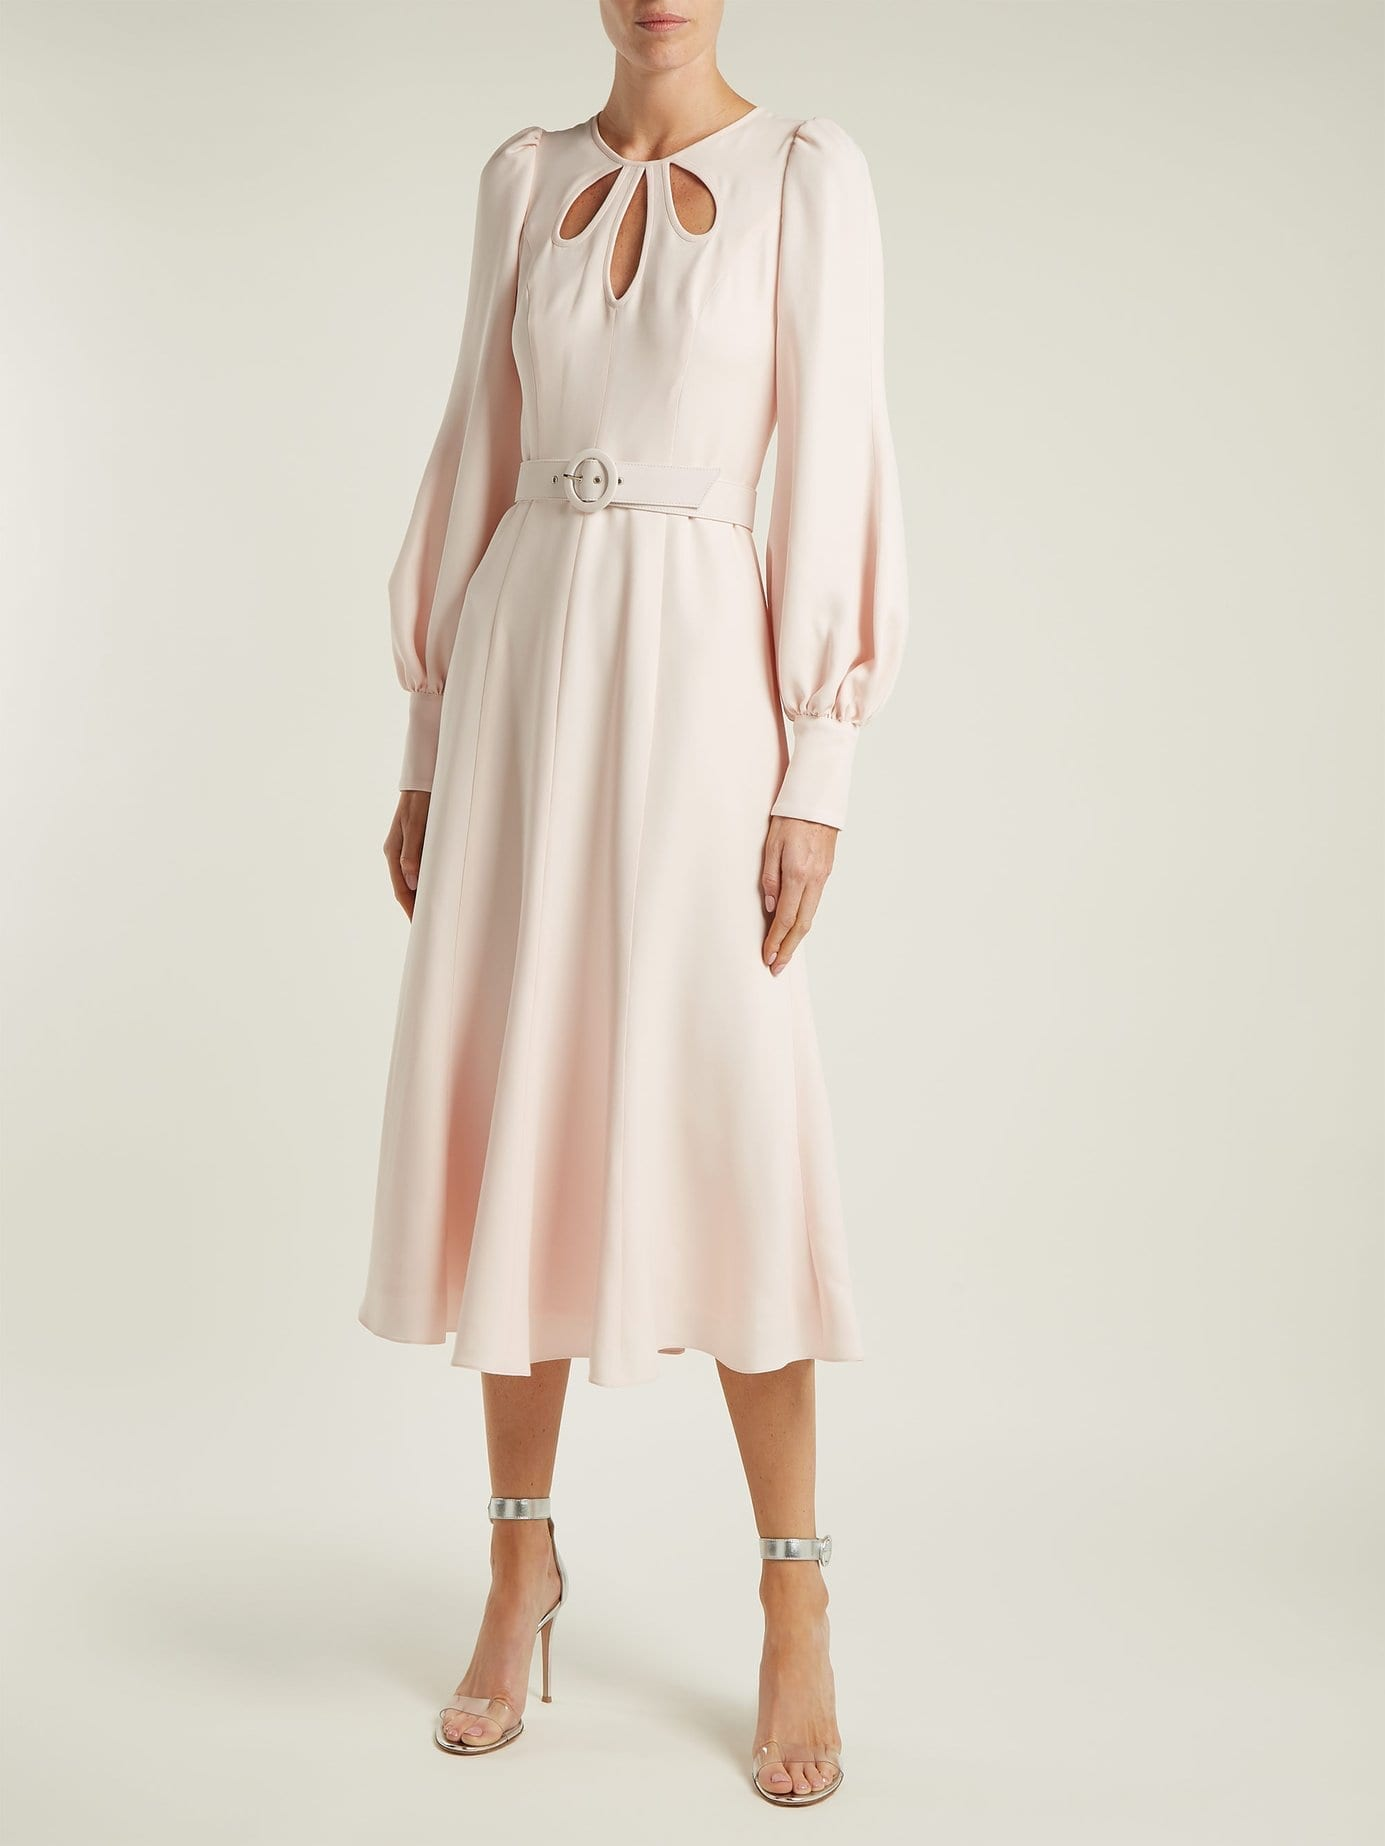 ANDREW GN Cut Out Crepe Midi Blush Pink Dress